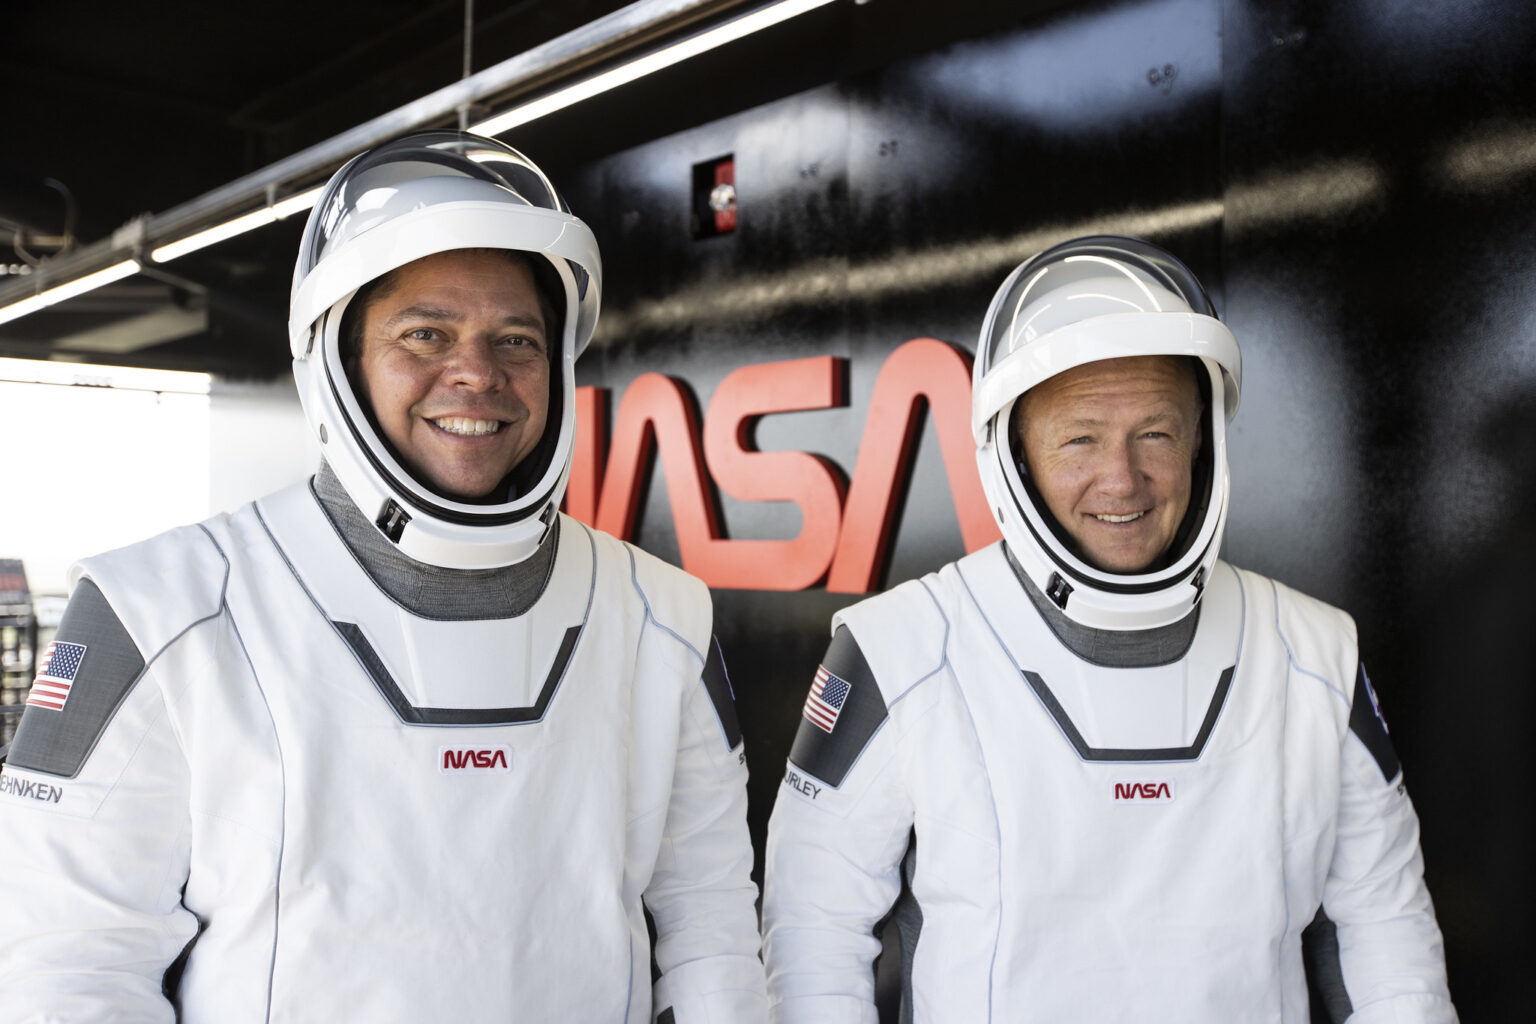 Behnken and Hurlay astronauts